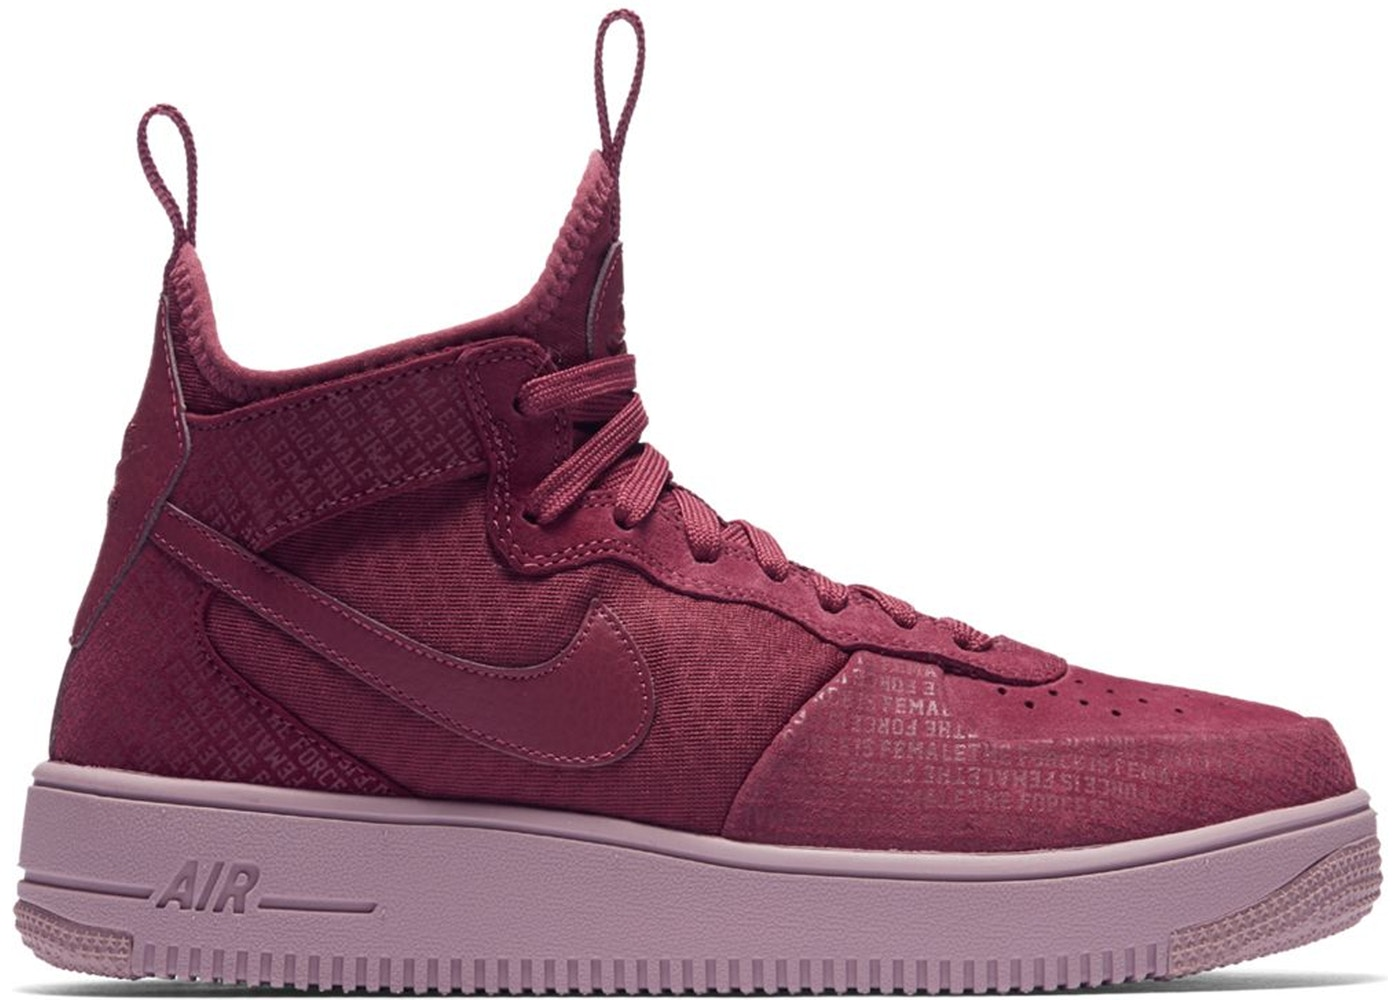 NIKE Air Force 1 Ultraforce Mid Force is Female